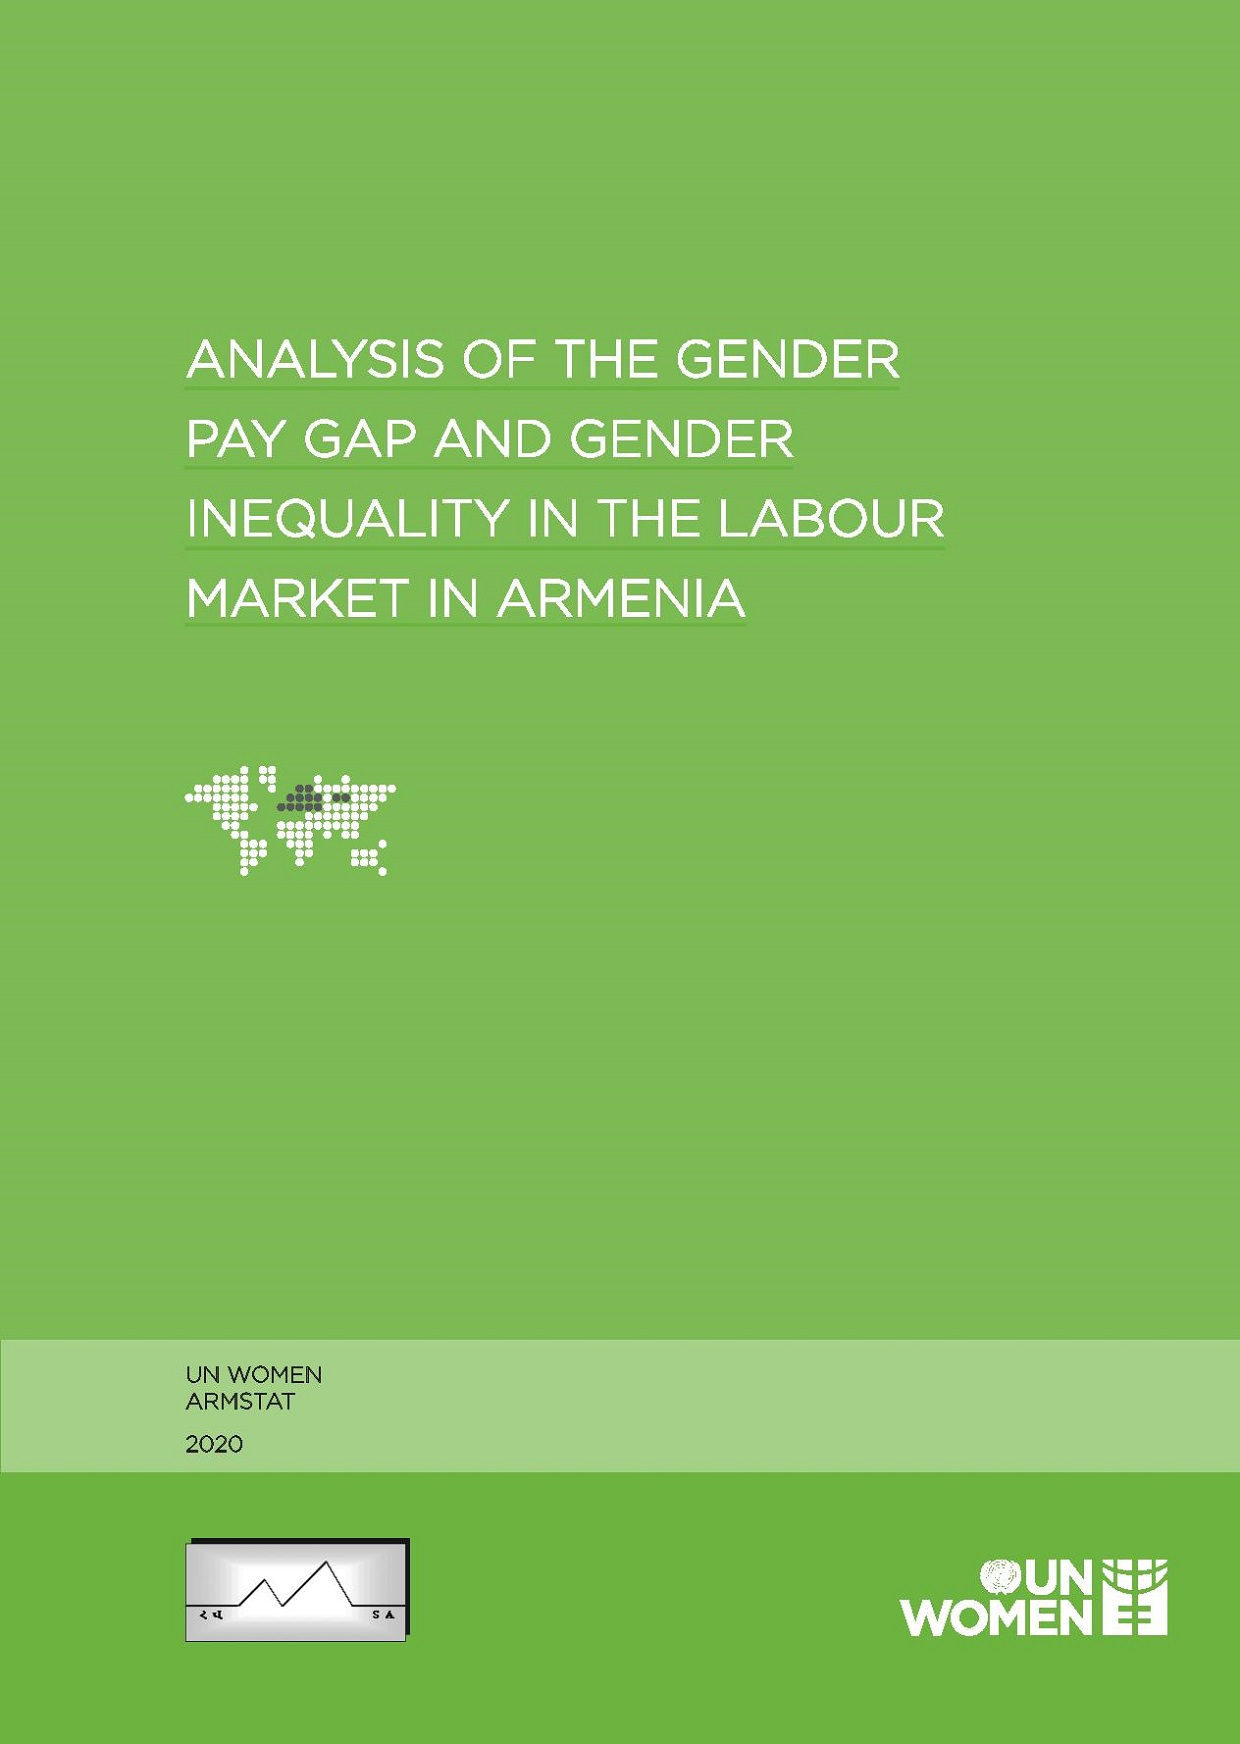 Analysis of the Gender Pay Gap and Gender Inequality in the Labor Market in Armenia